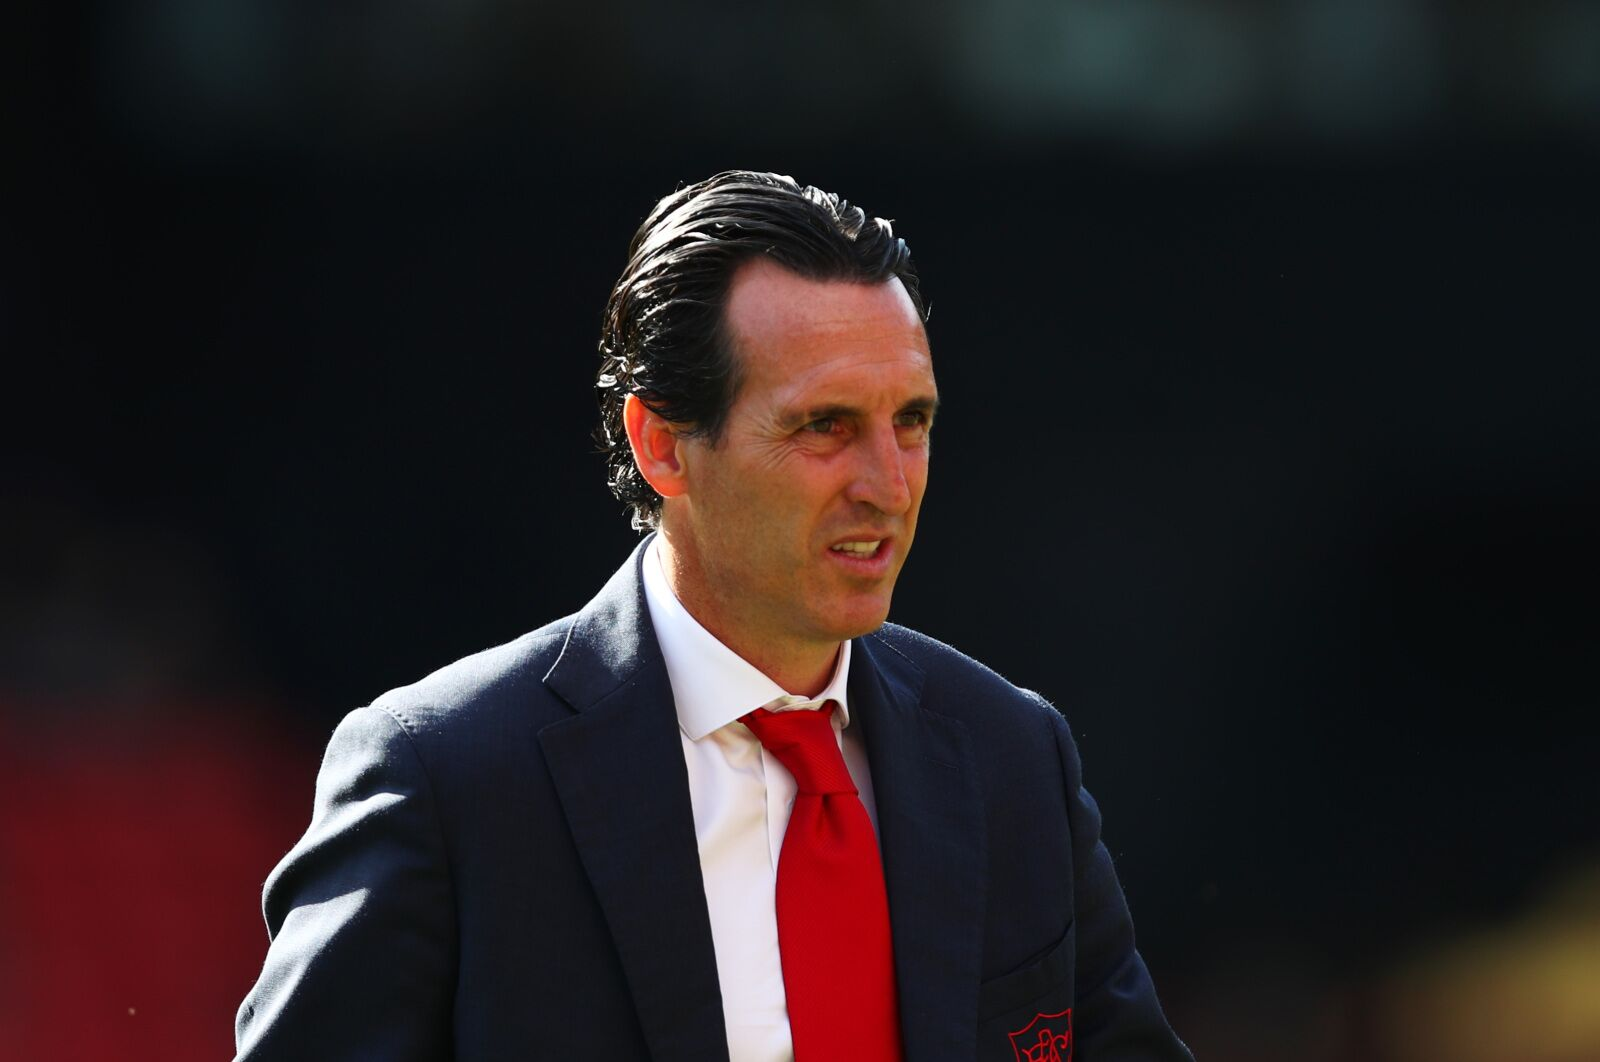 Arsenal: Unai Emery's approach raises questions about his future